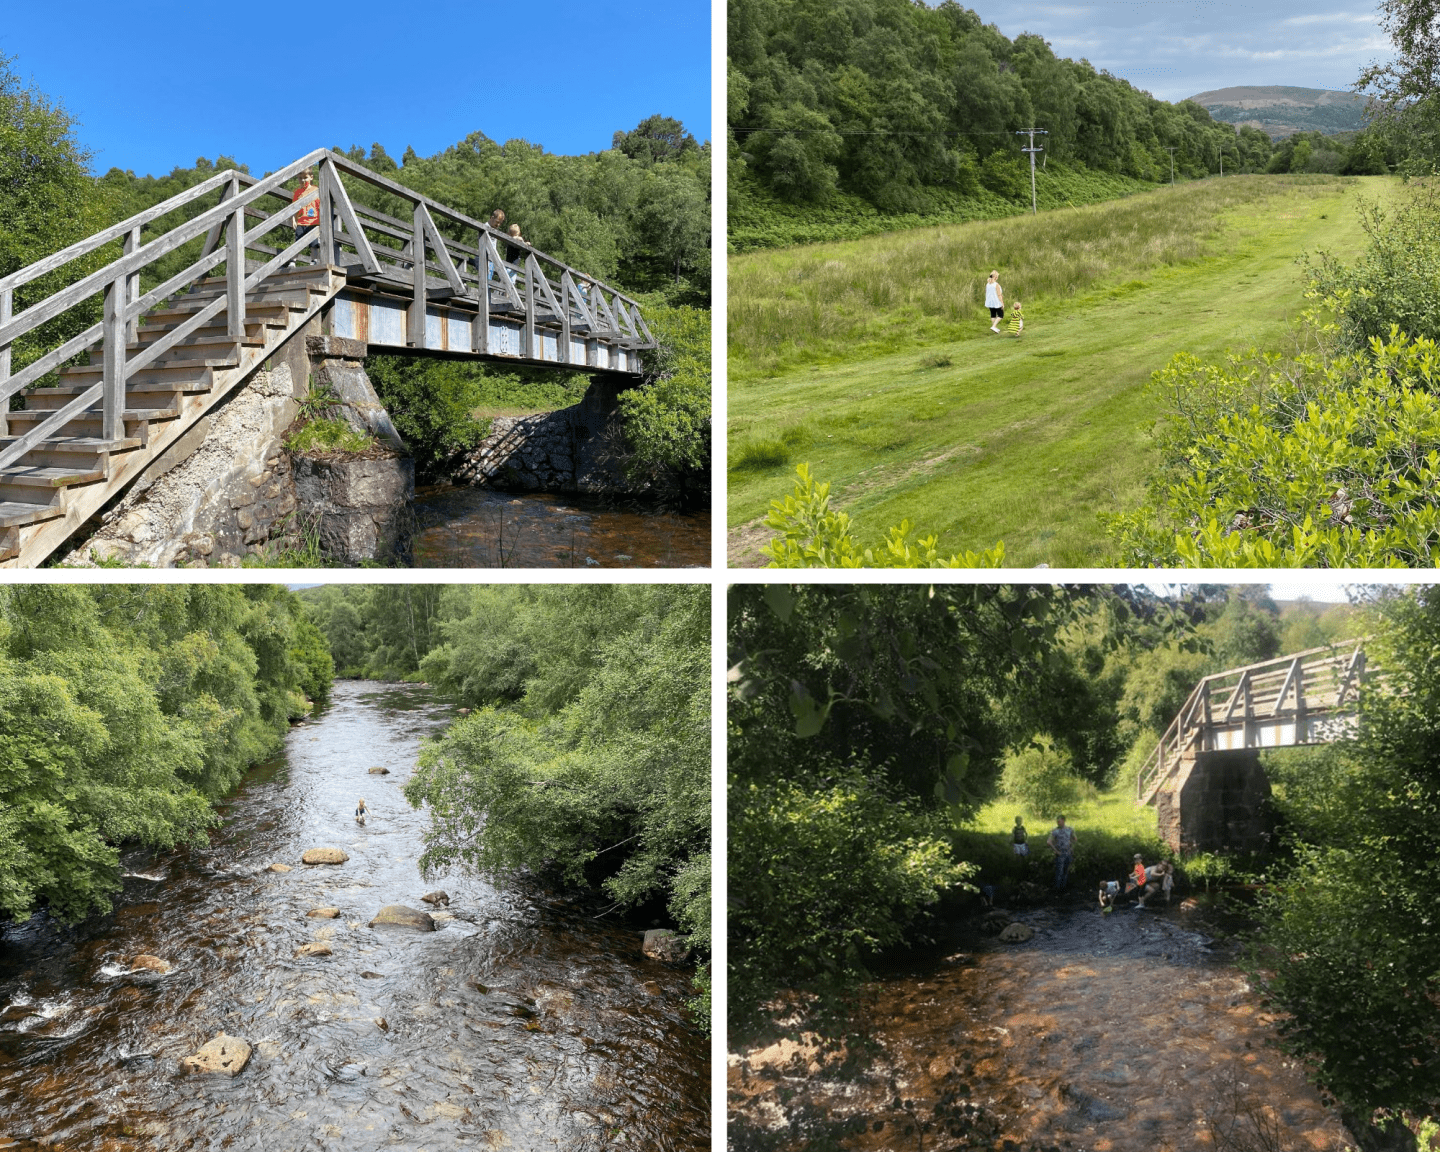 A grid of 4 photos from the River Gairn area. The show the water and a bridge over it.